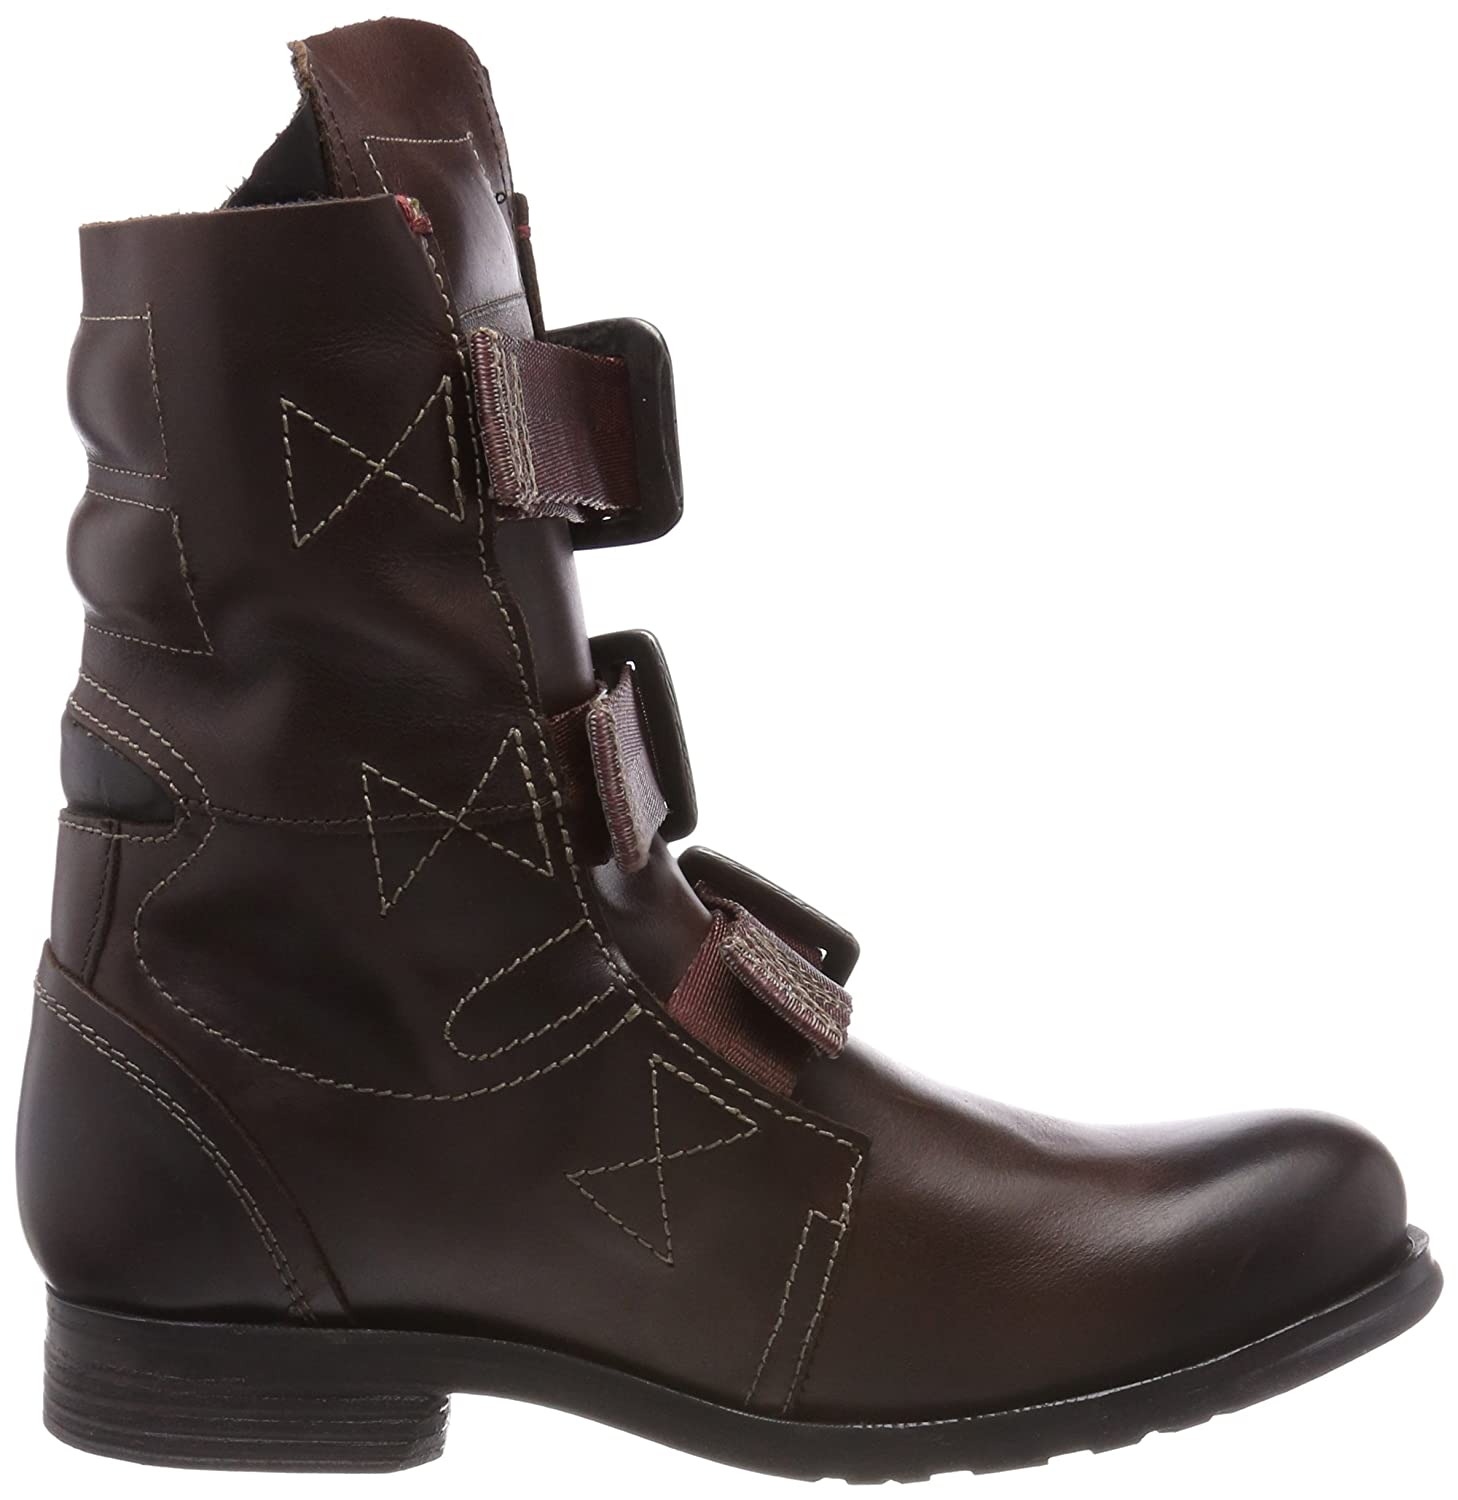 FLY London Women's Stif Ankle - Boot B00BDBKN6G 4 UK - Ankle 6 US - 37 EU|Dark Brown Rug 1f182a